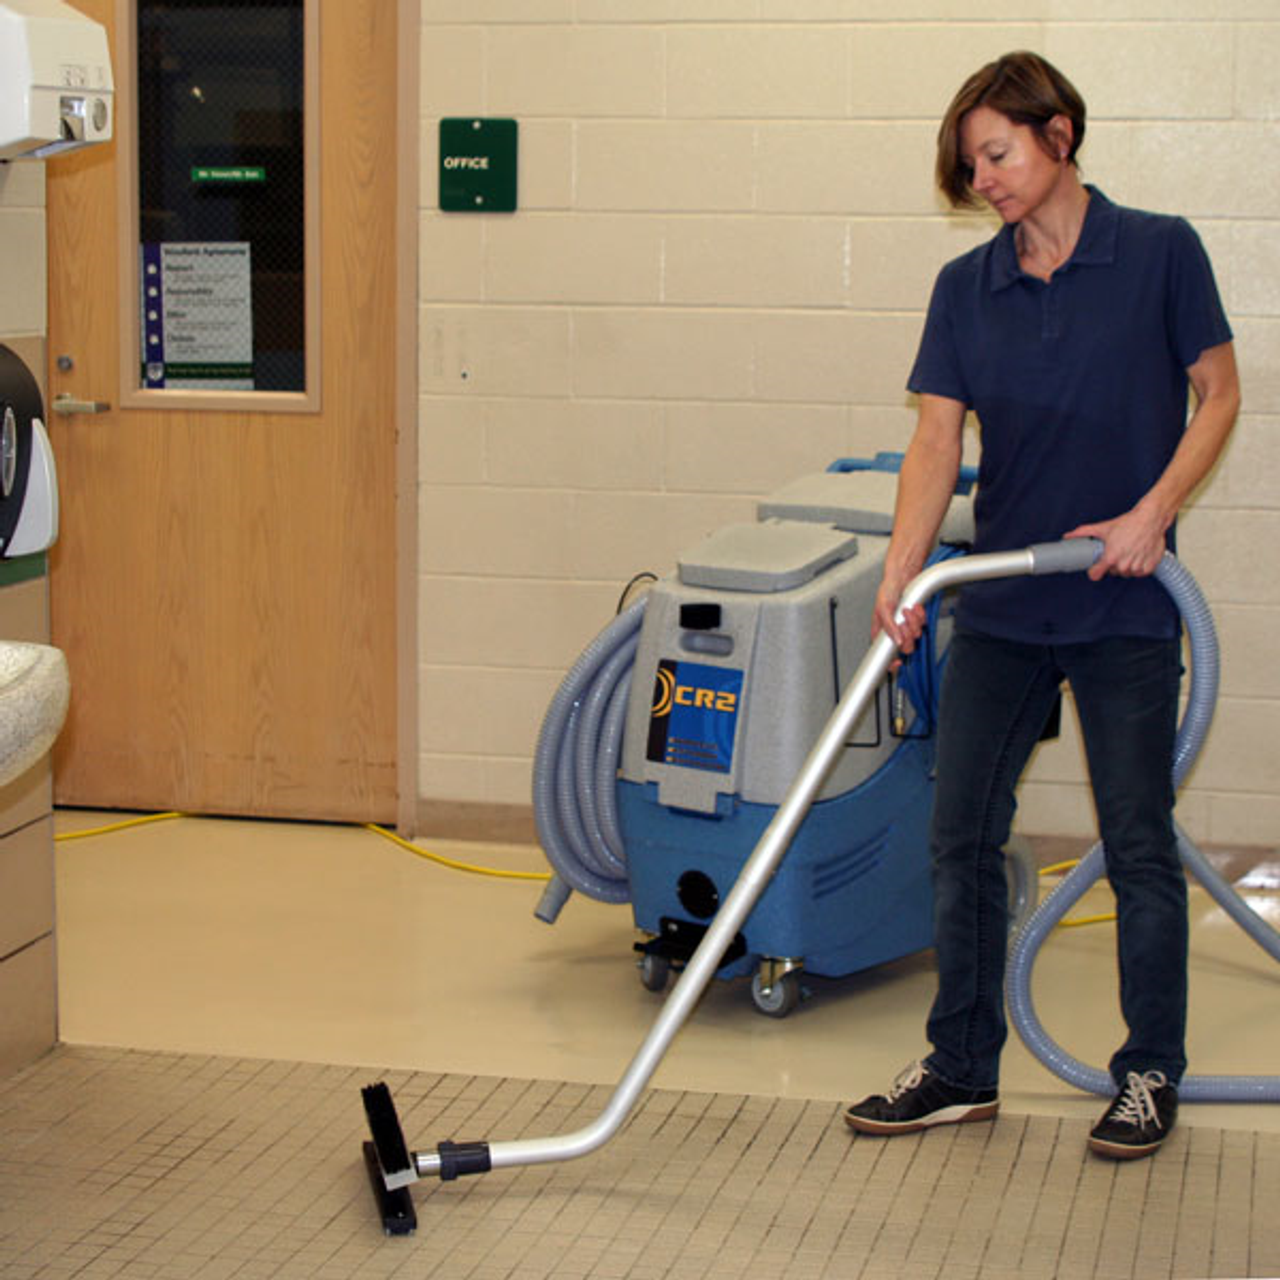 The CR2 restroom cleaning machine combines a pressure washer with a powerful vacuum system for Touch-Free cleaning that effectively deep cleans restrooms in public facilities.